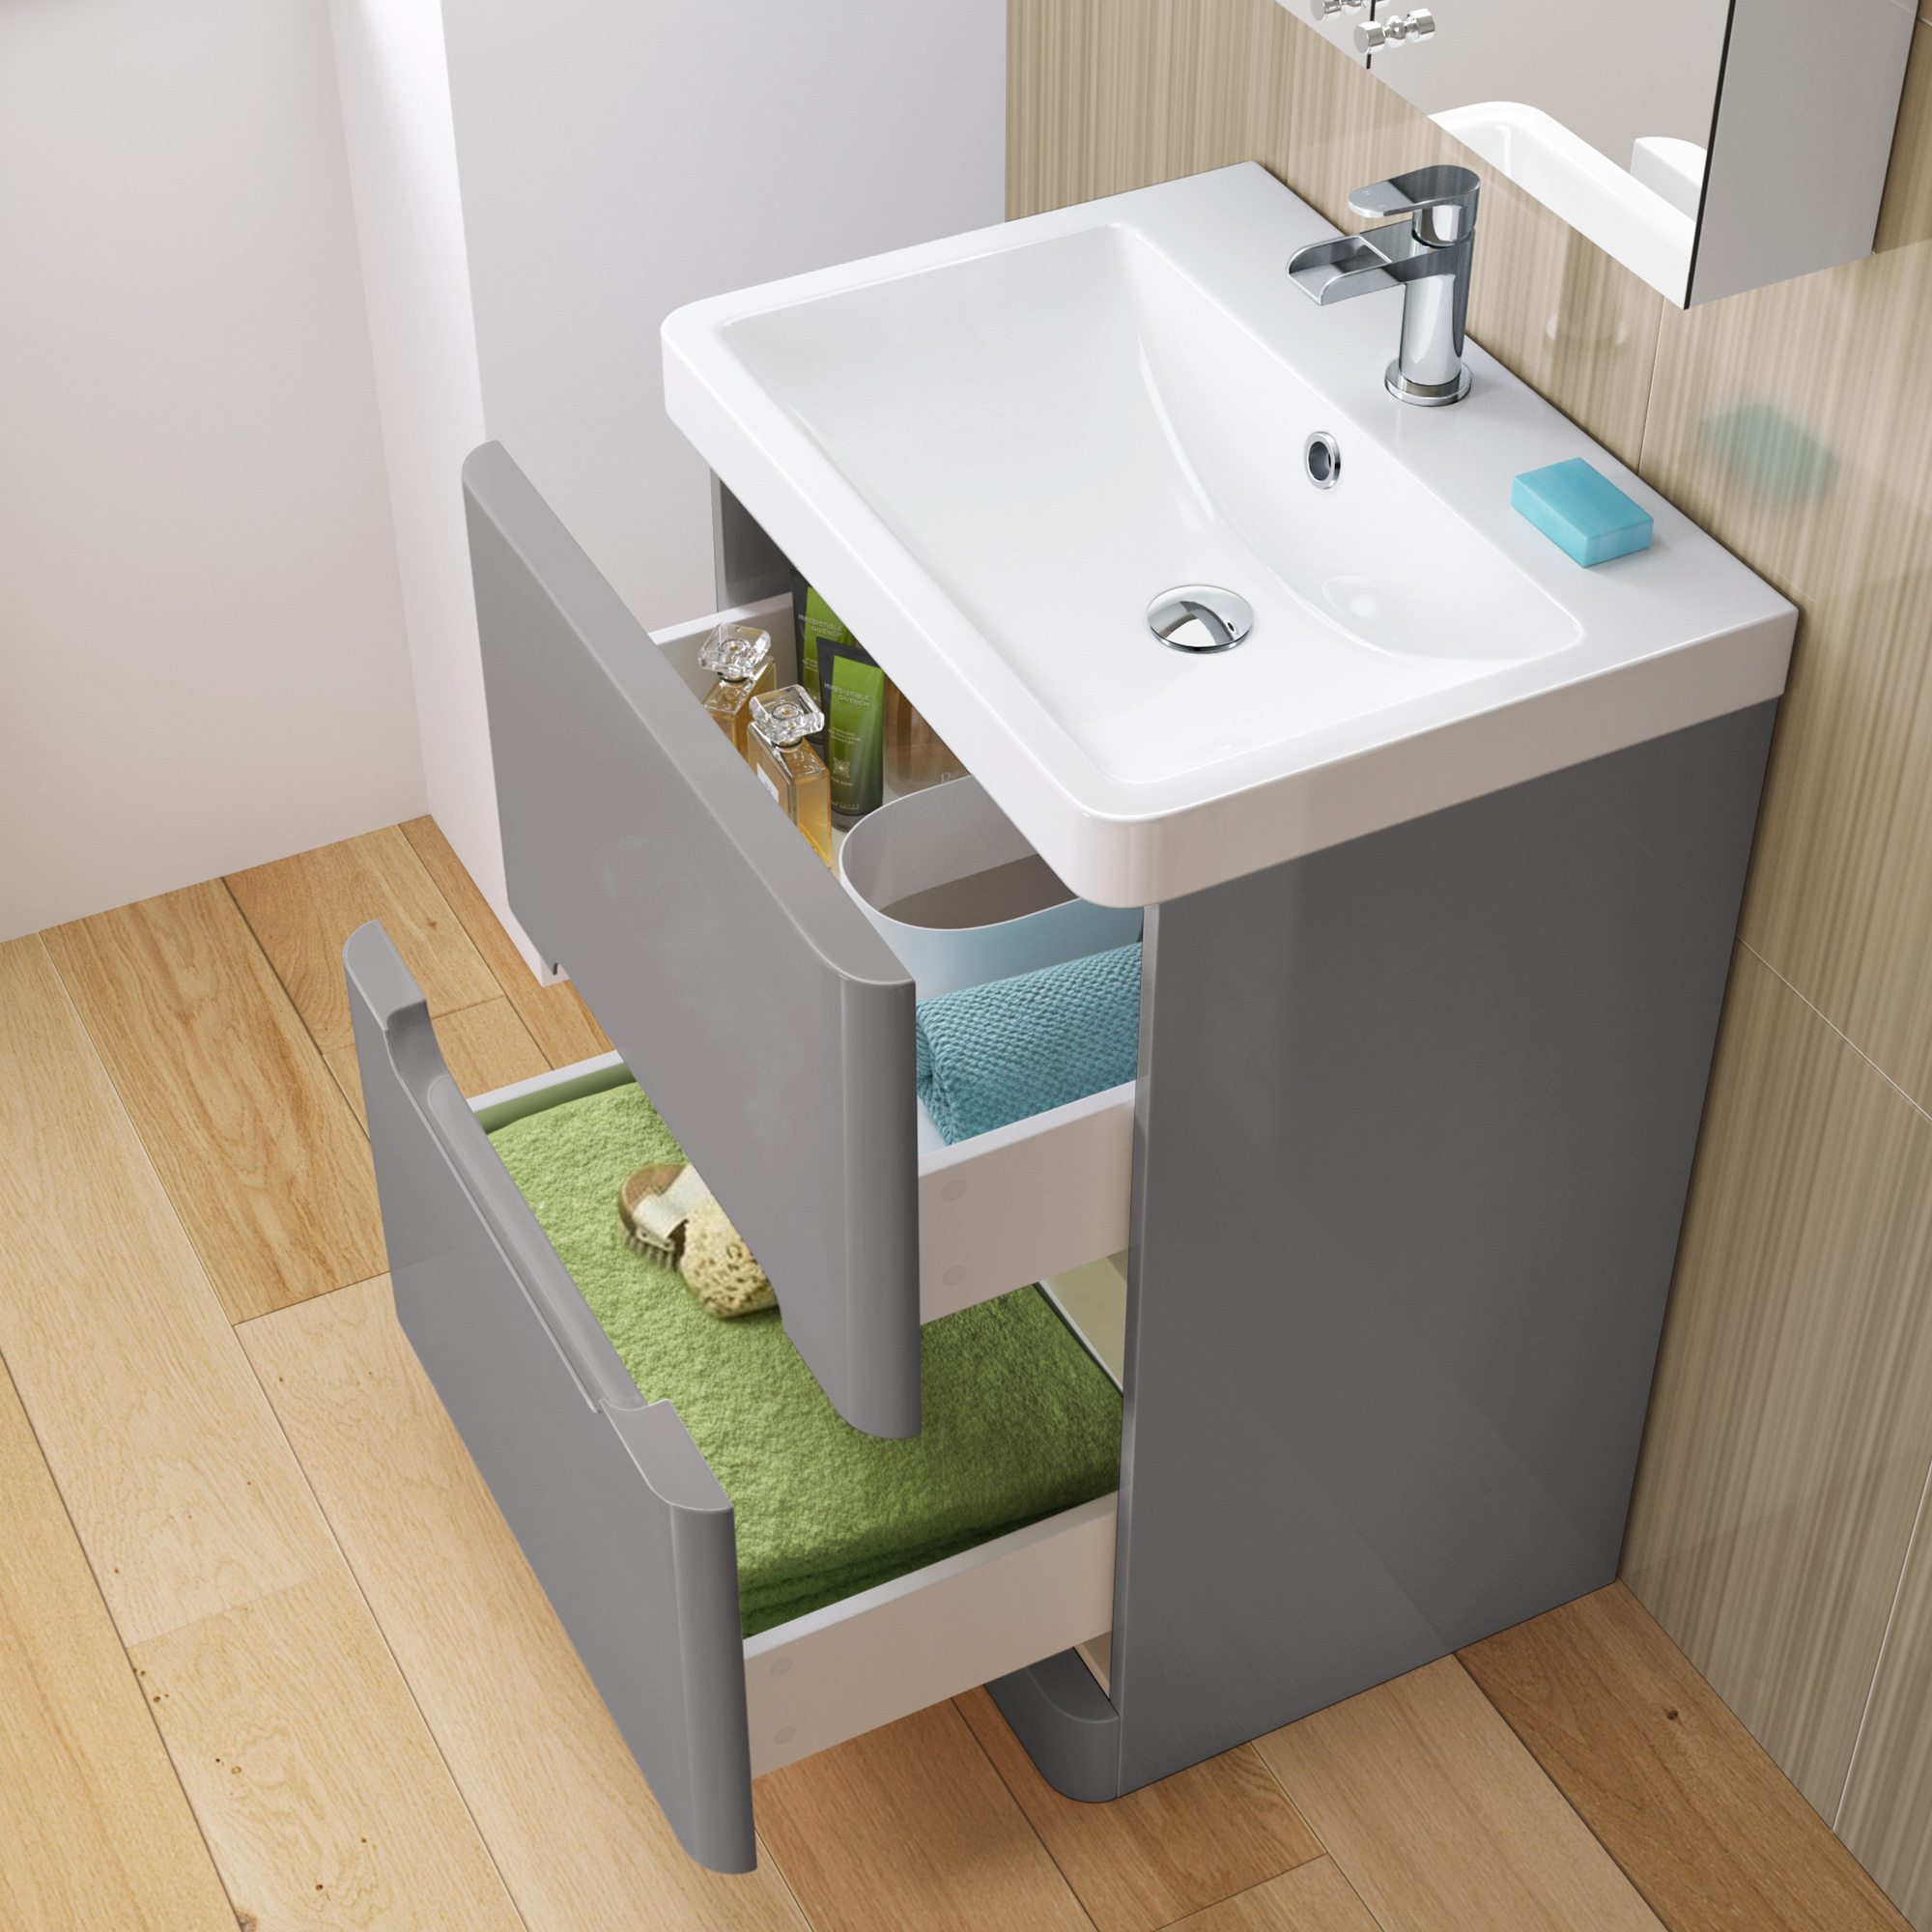 600mm grey basin vanity unit floor standing bathroom drawer cabinet ebay for Bathroom floor cabinet with drawer